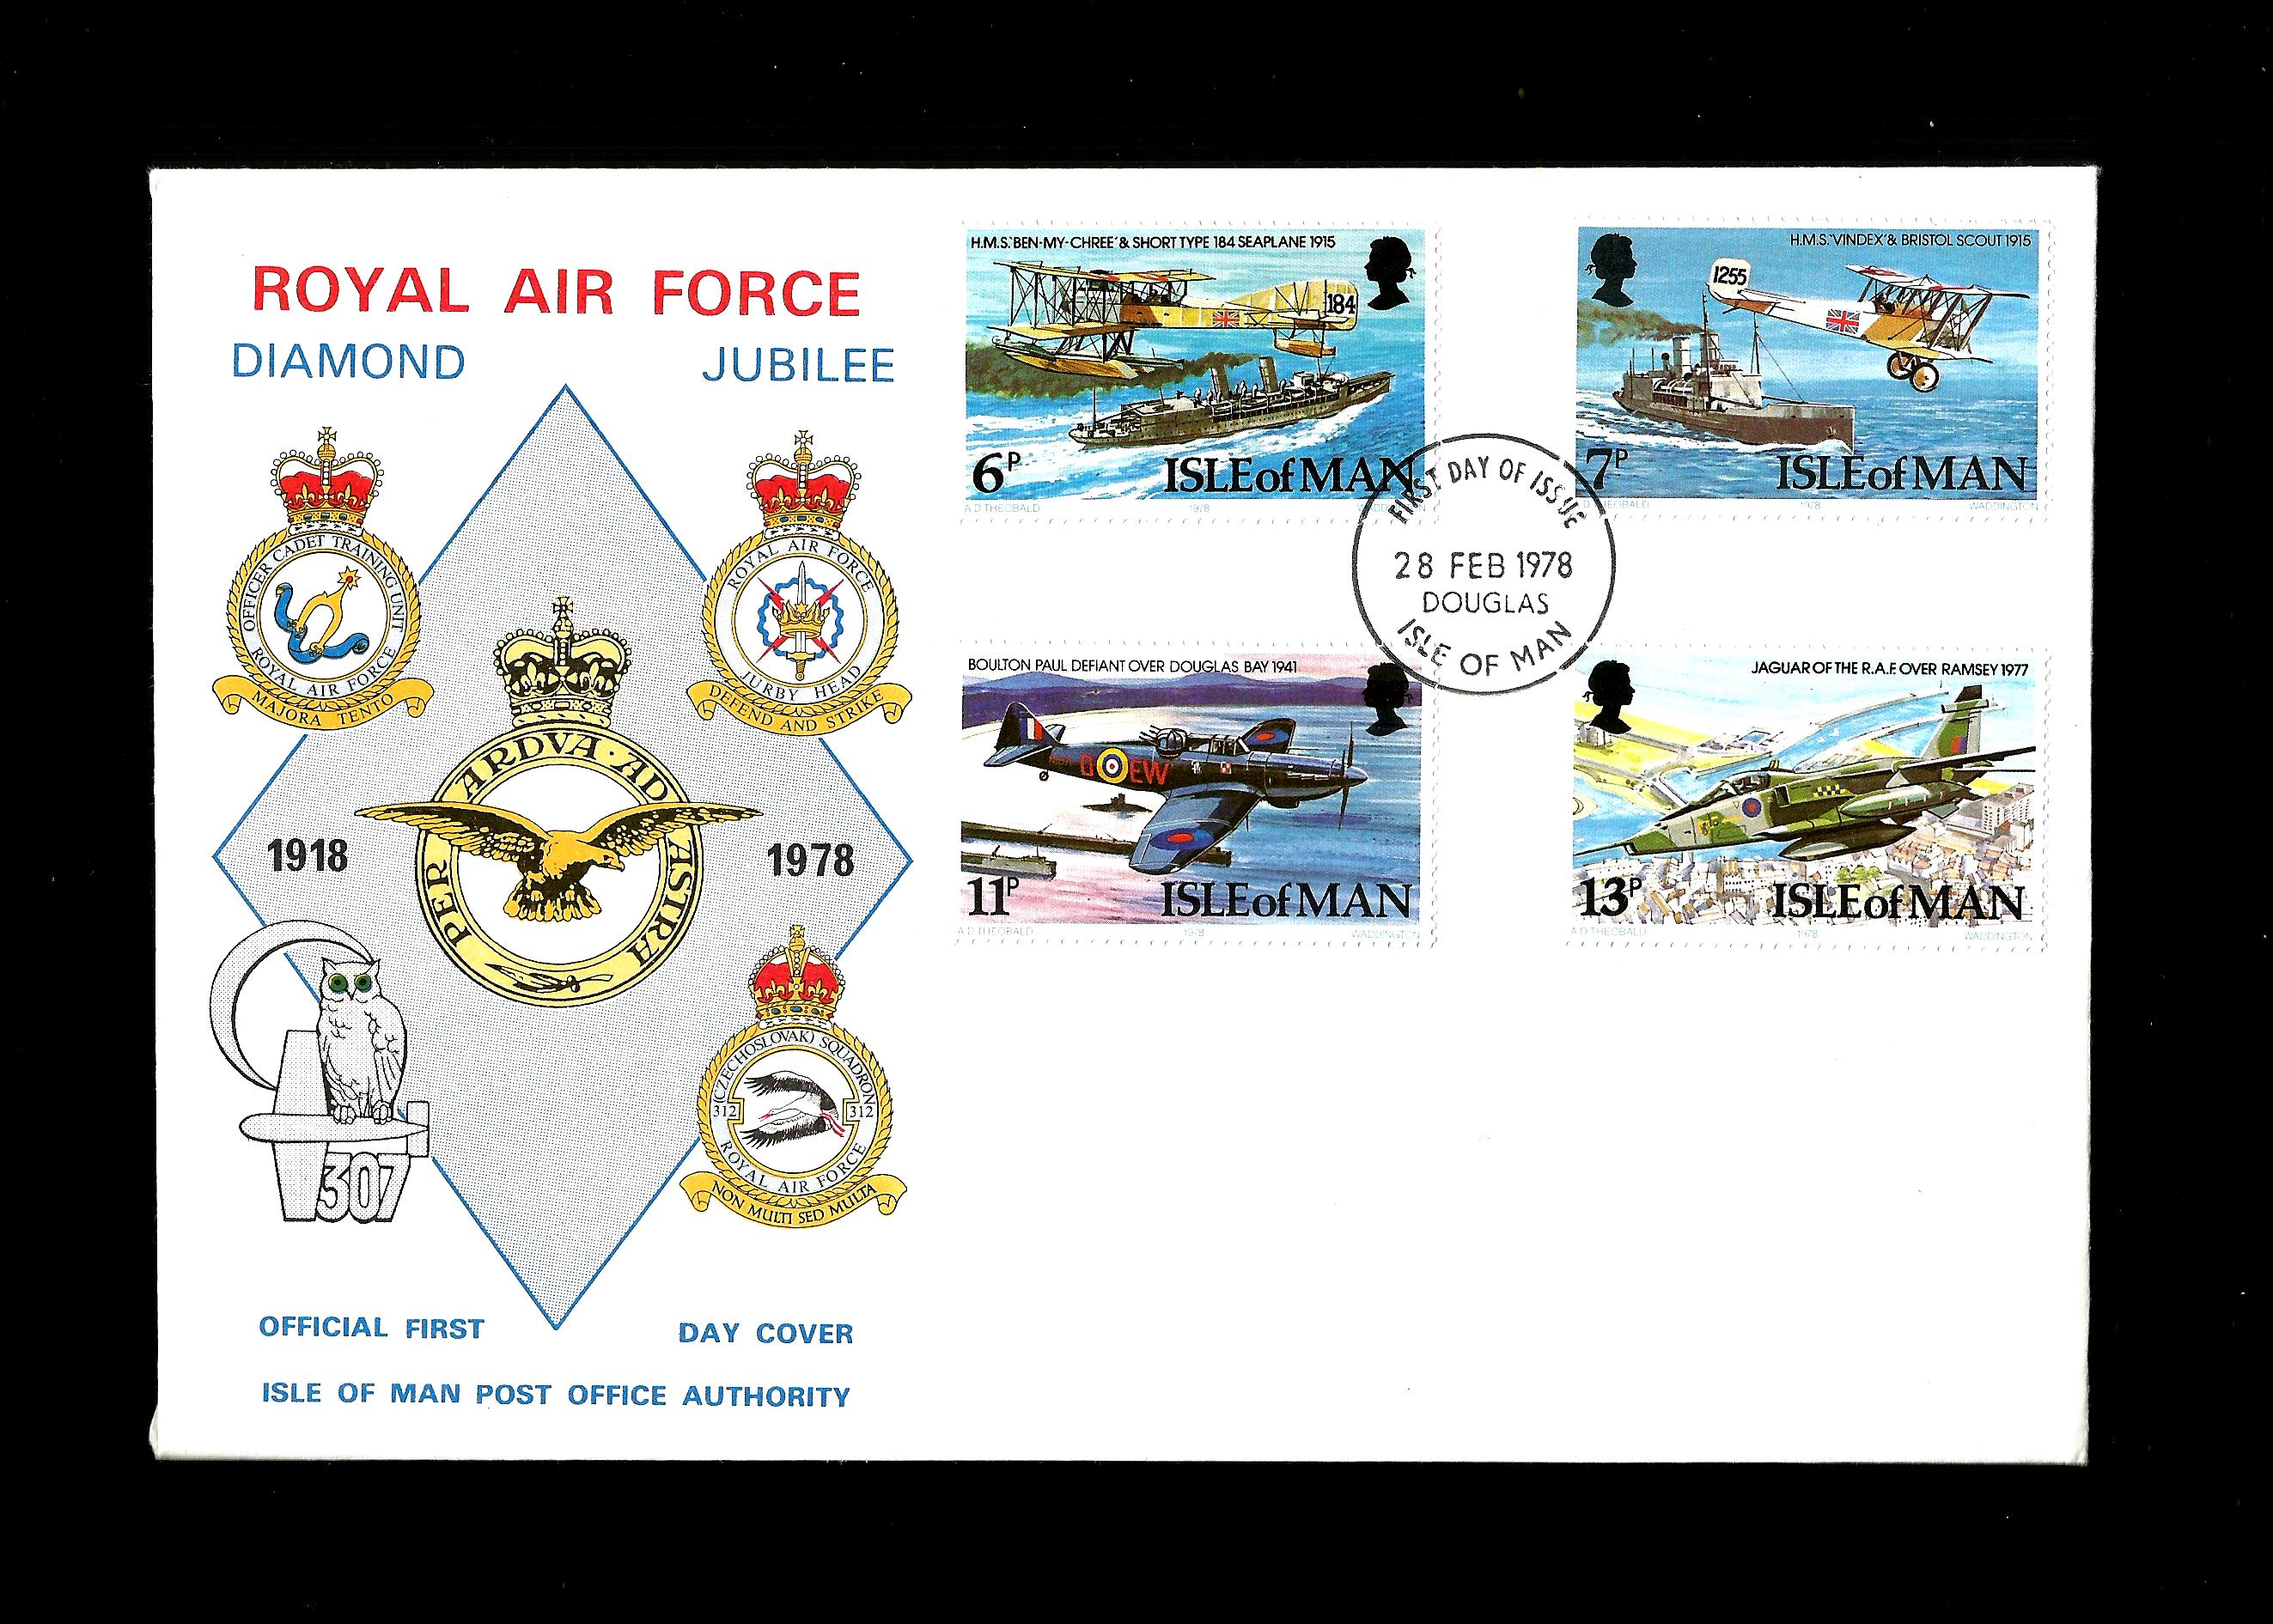 ISLE OF MAN - Royal Air Force, Fdc, 1978 Diamond Jubilee, Aviati